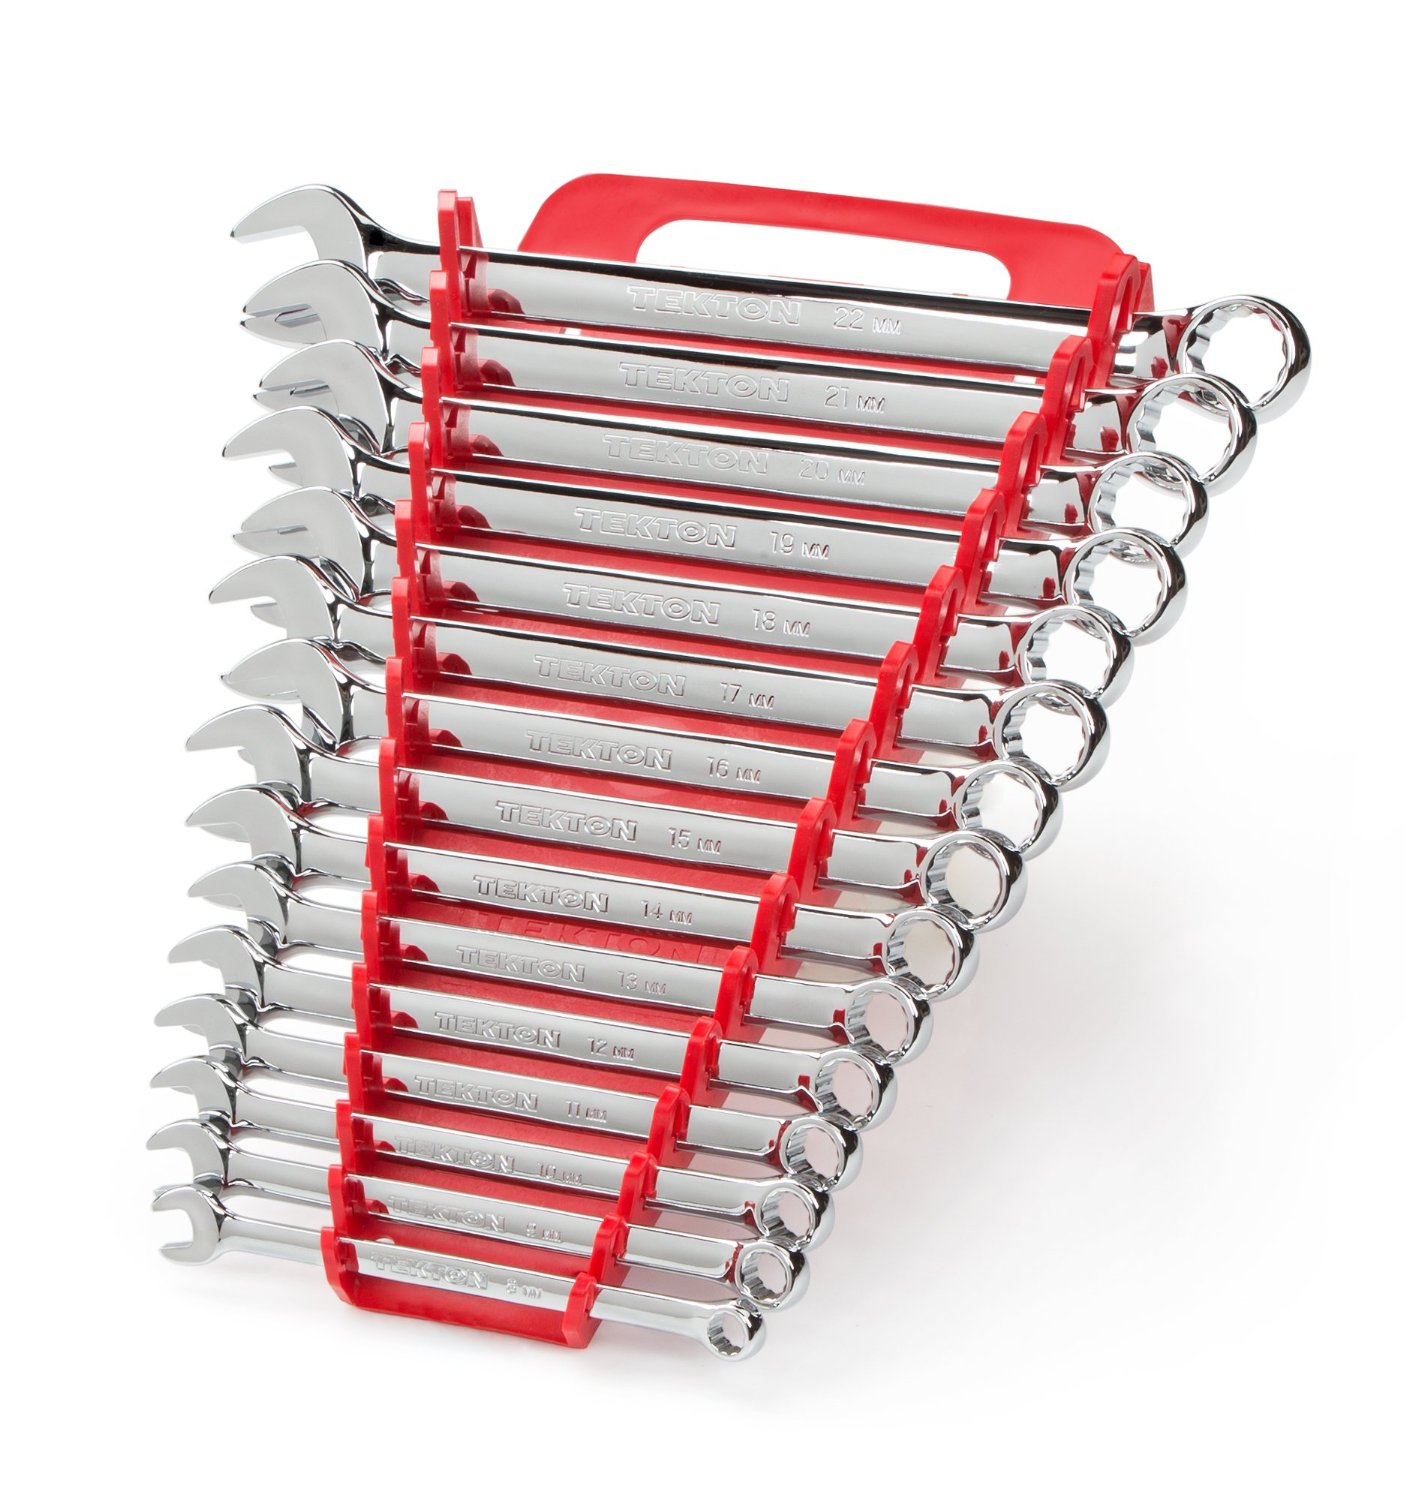 TEKTON Combination Wrench Set — Available in 4 Sizes & 2 Styles